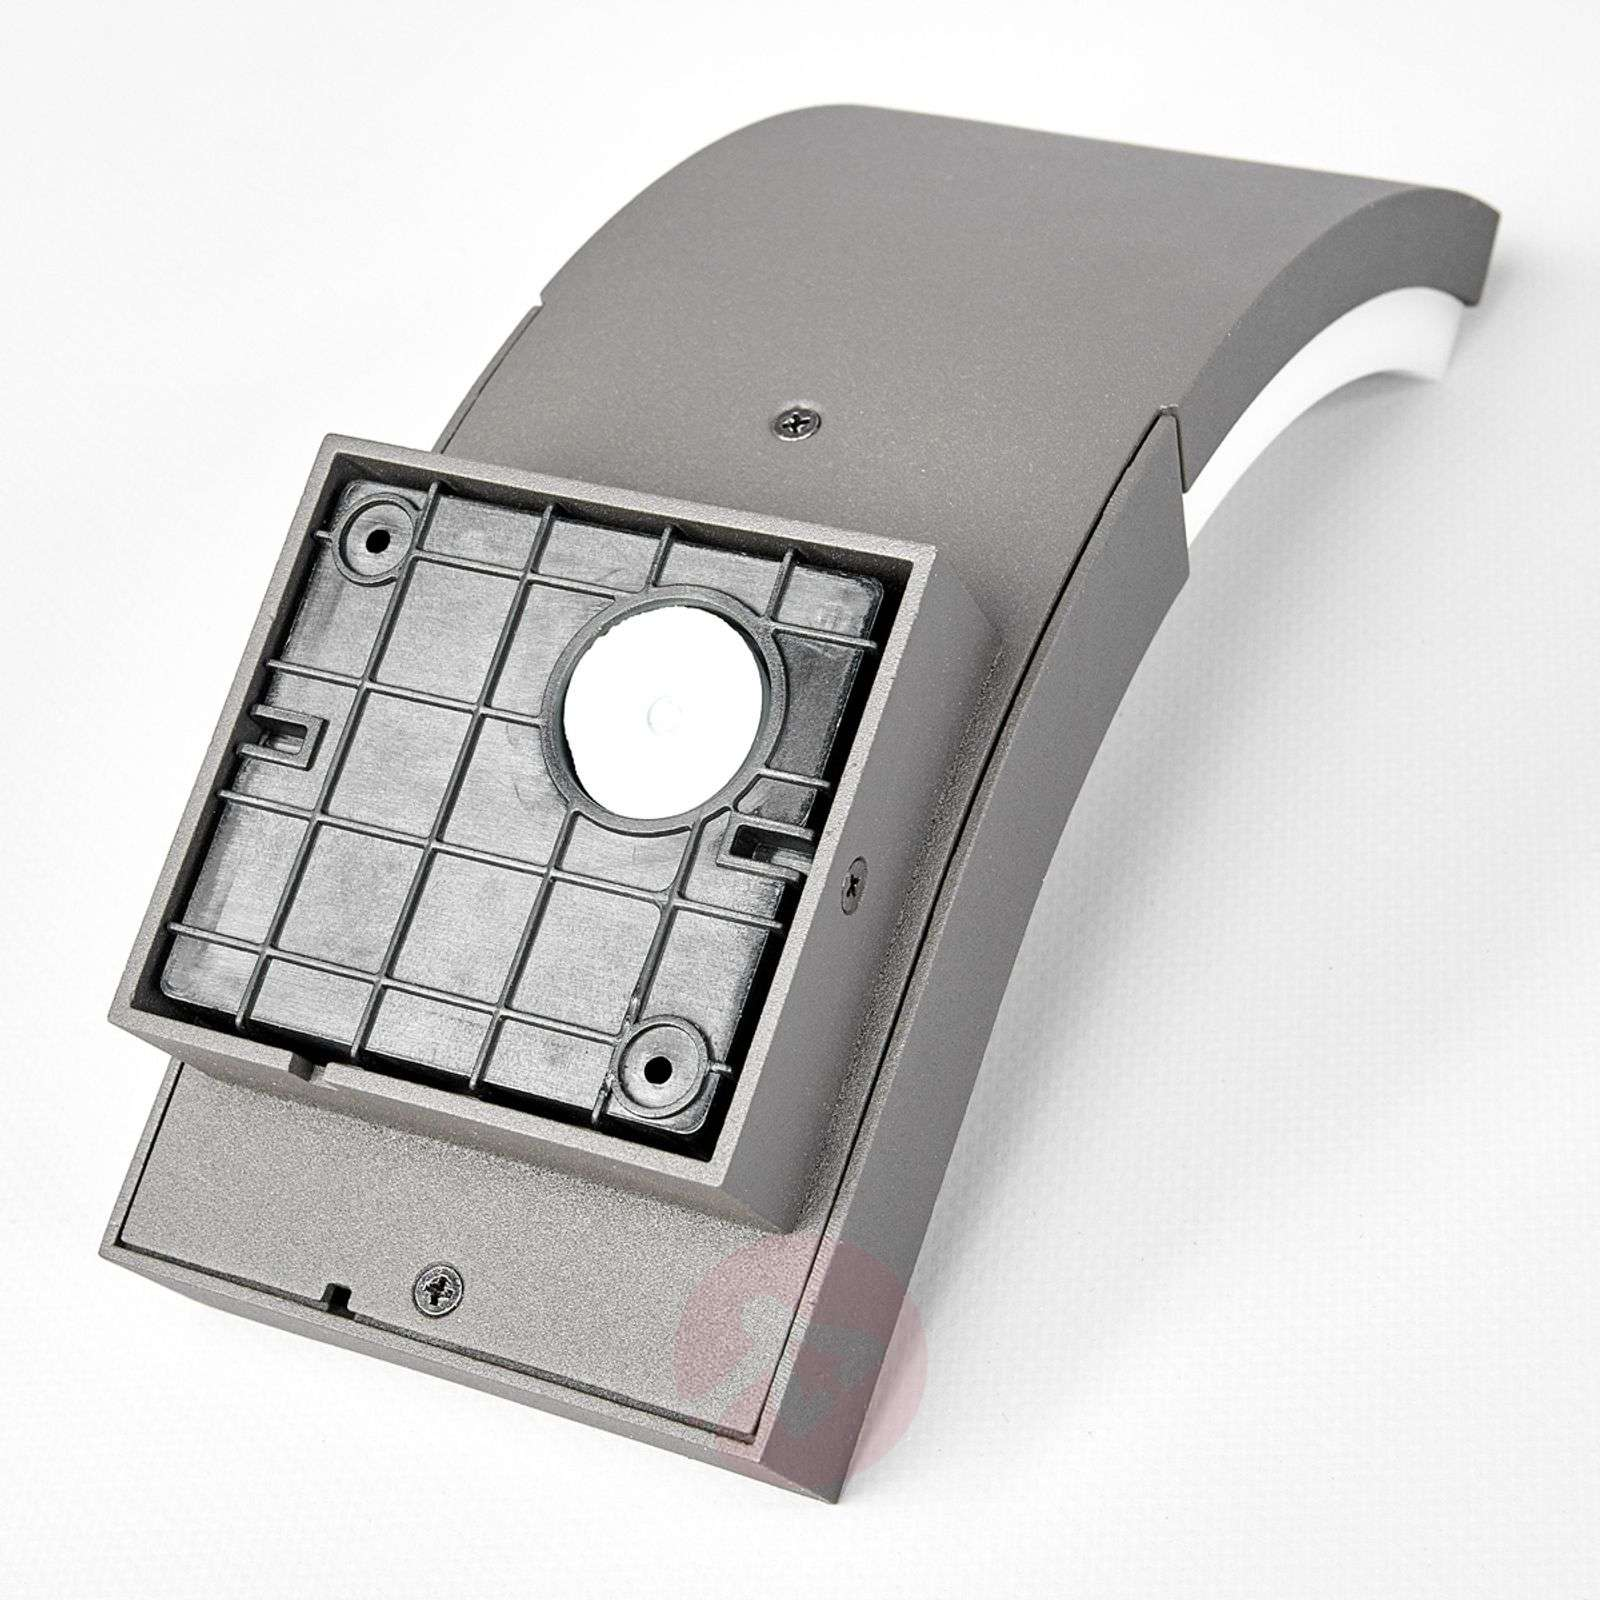 LED outdoor wall light Timm with motion detector-9619049-03